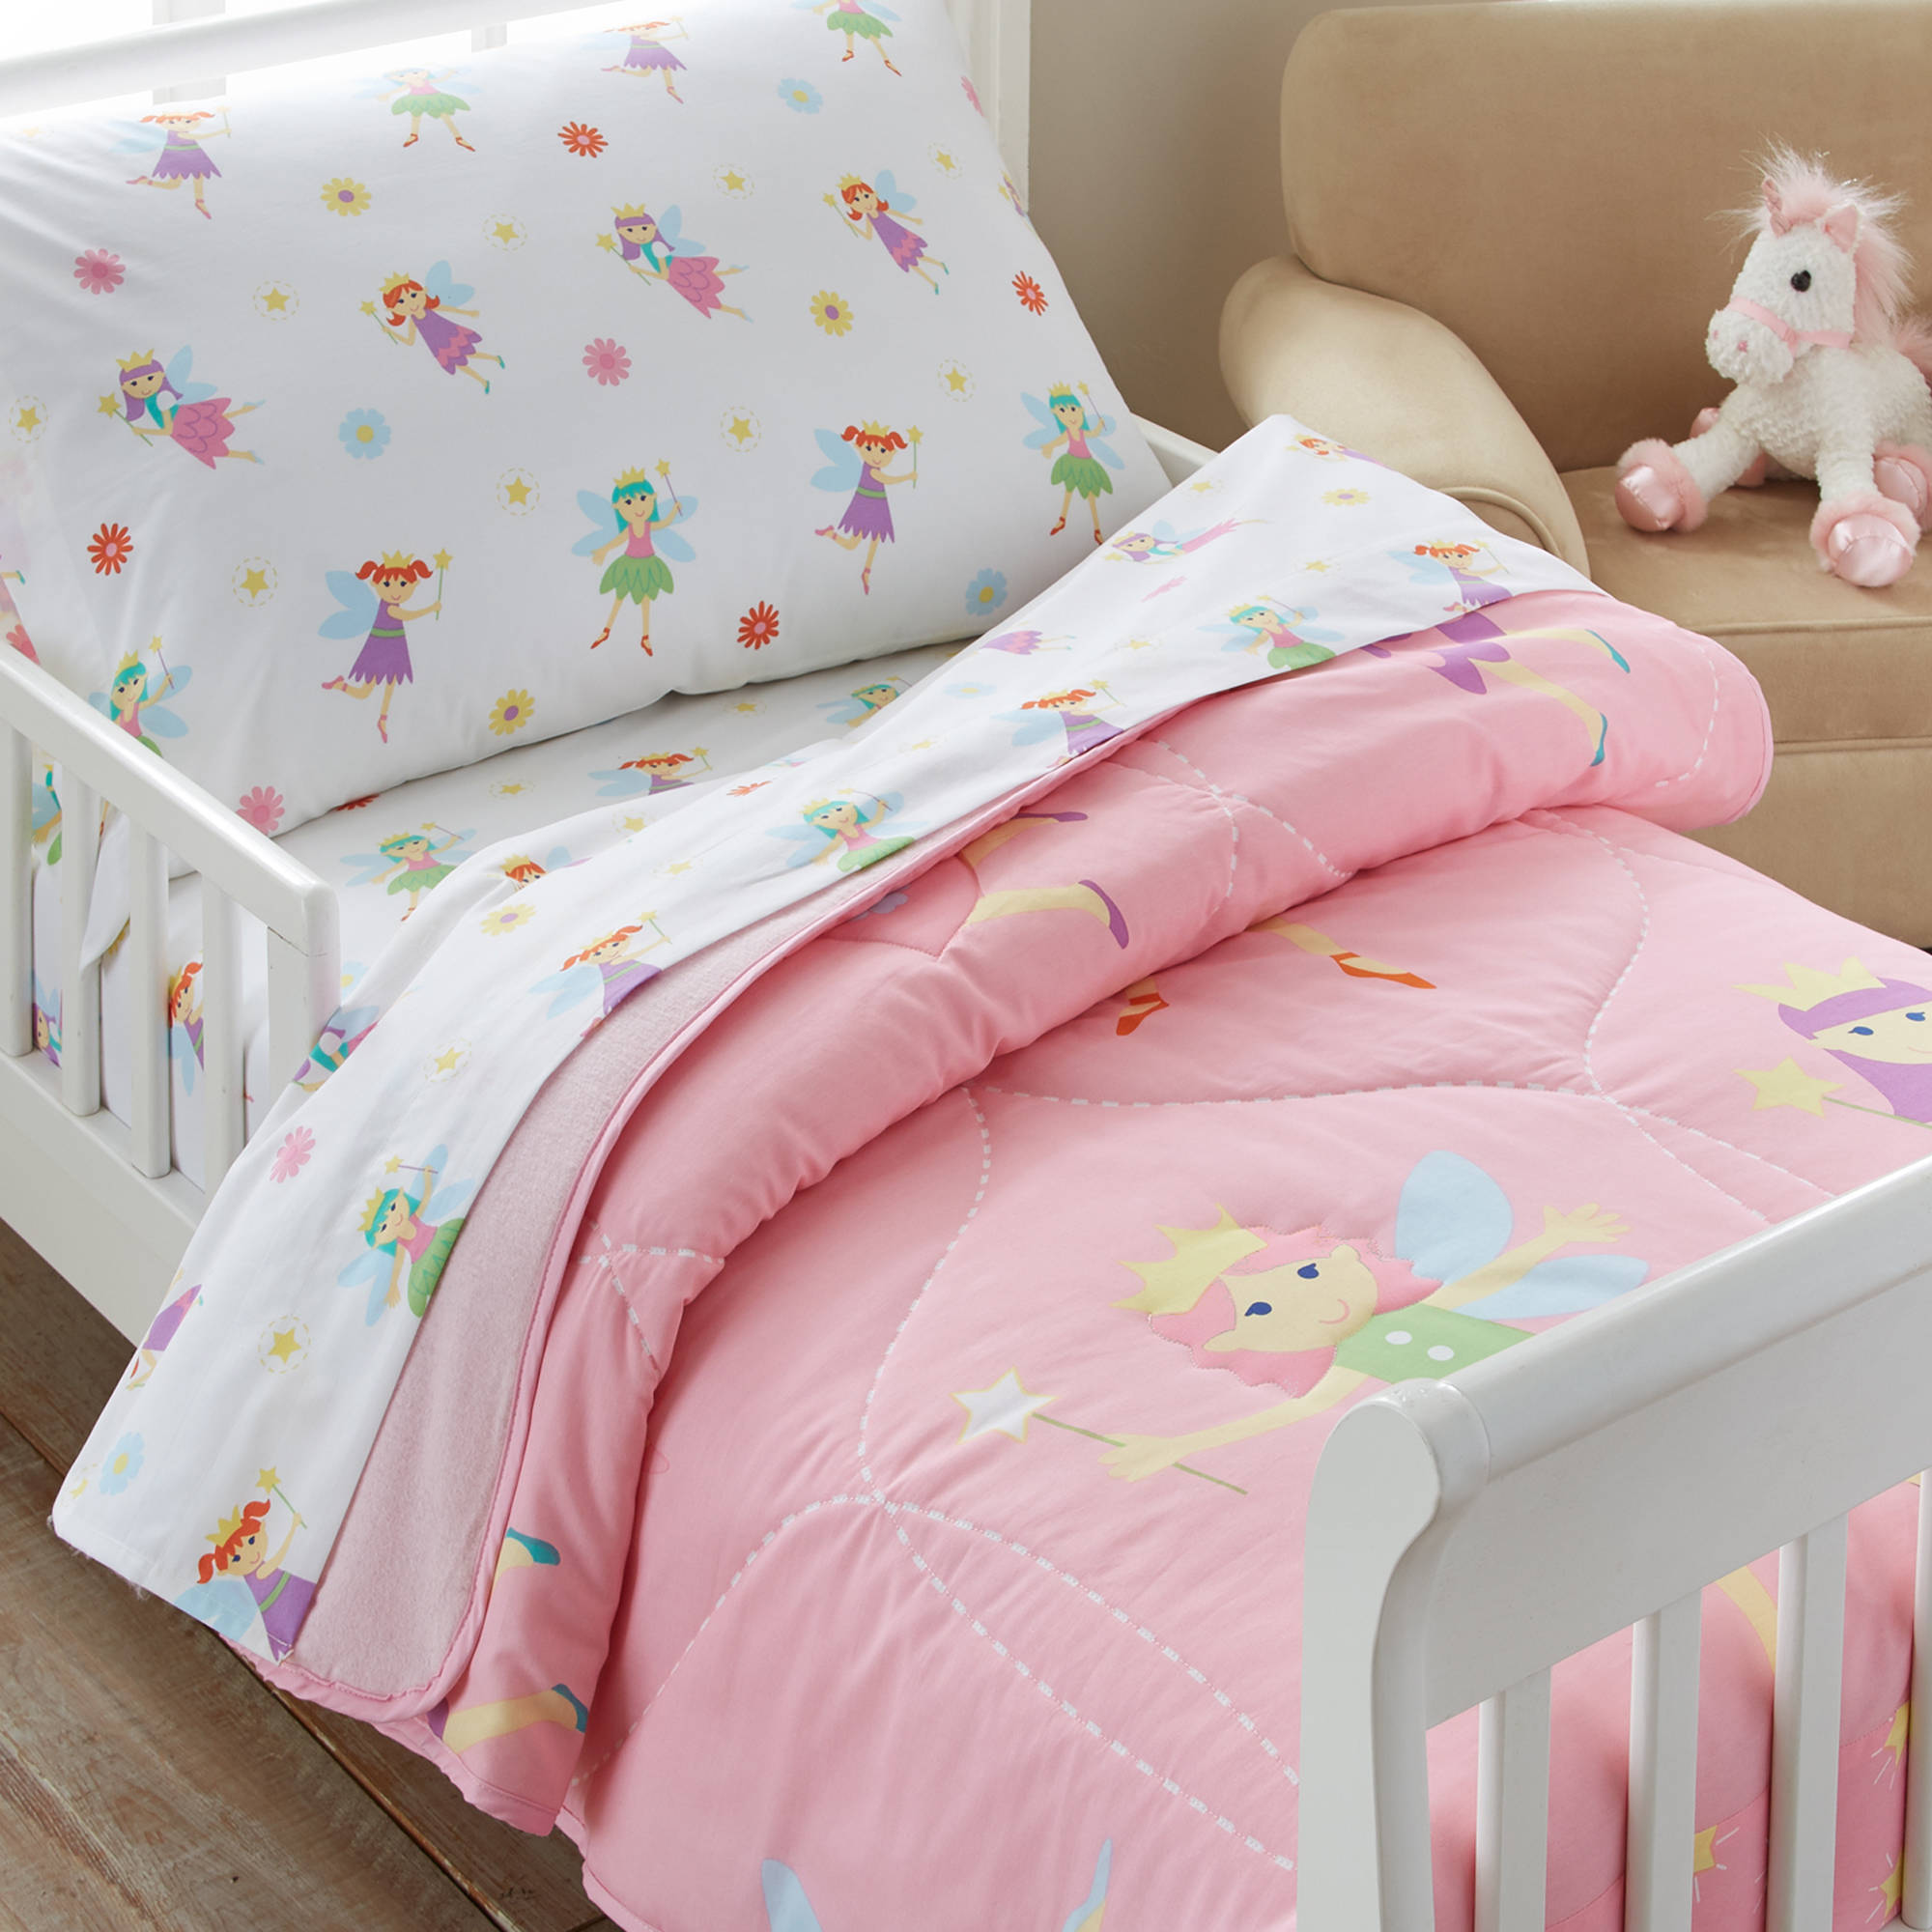 ultra bed twin home princess factory dream girls kitchen dp ca microfiber soft pink magical set amazon comforter